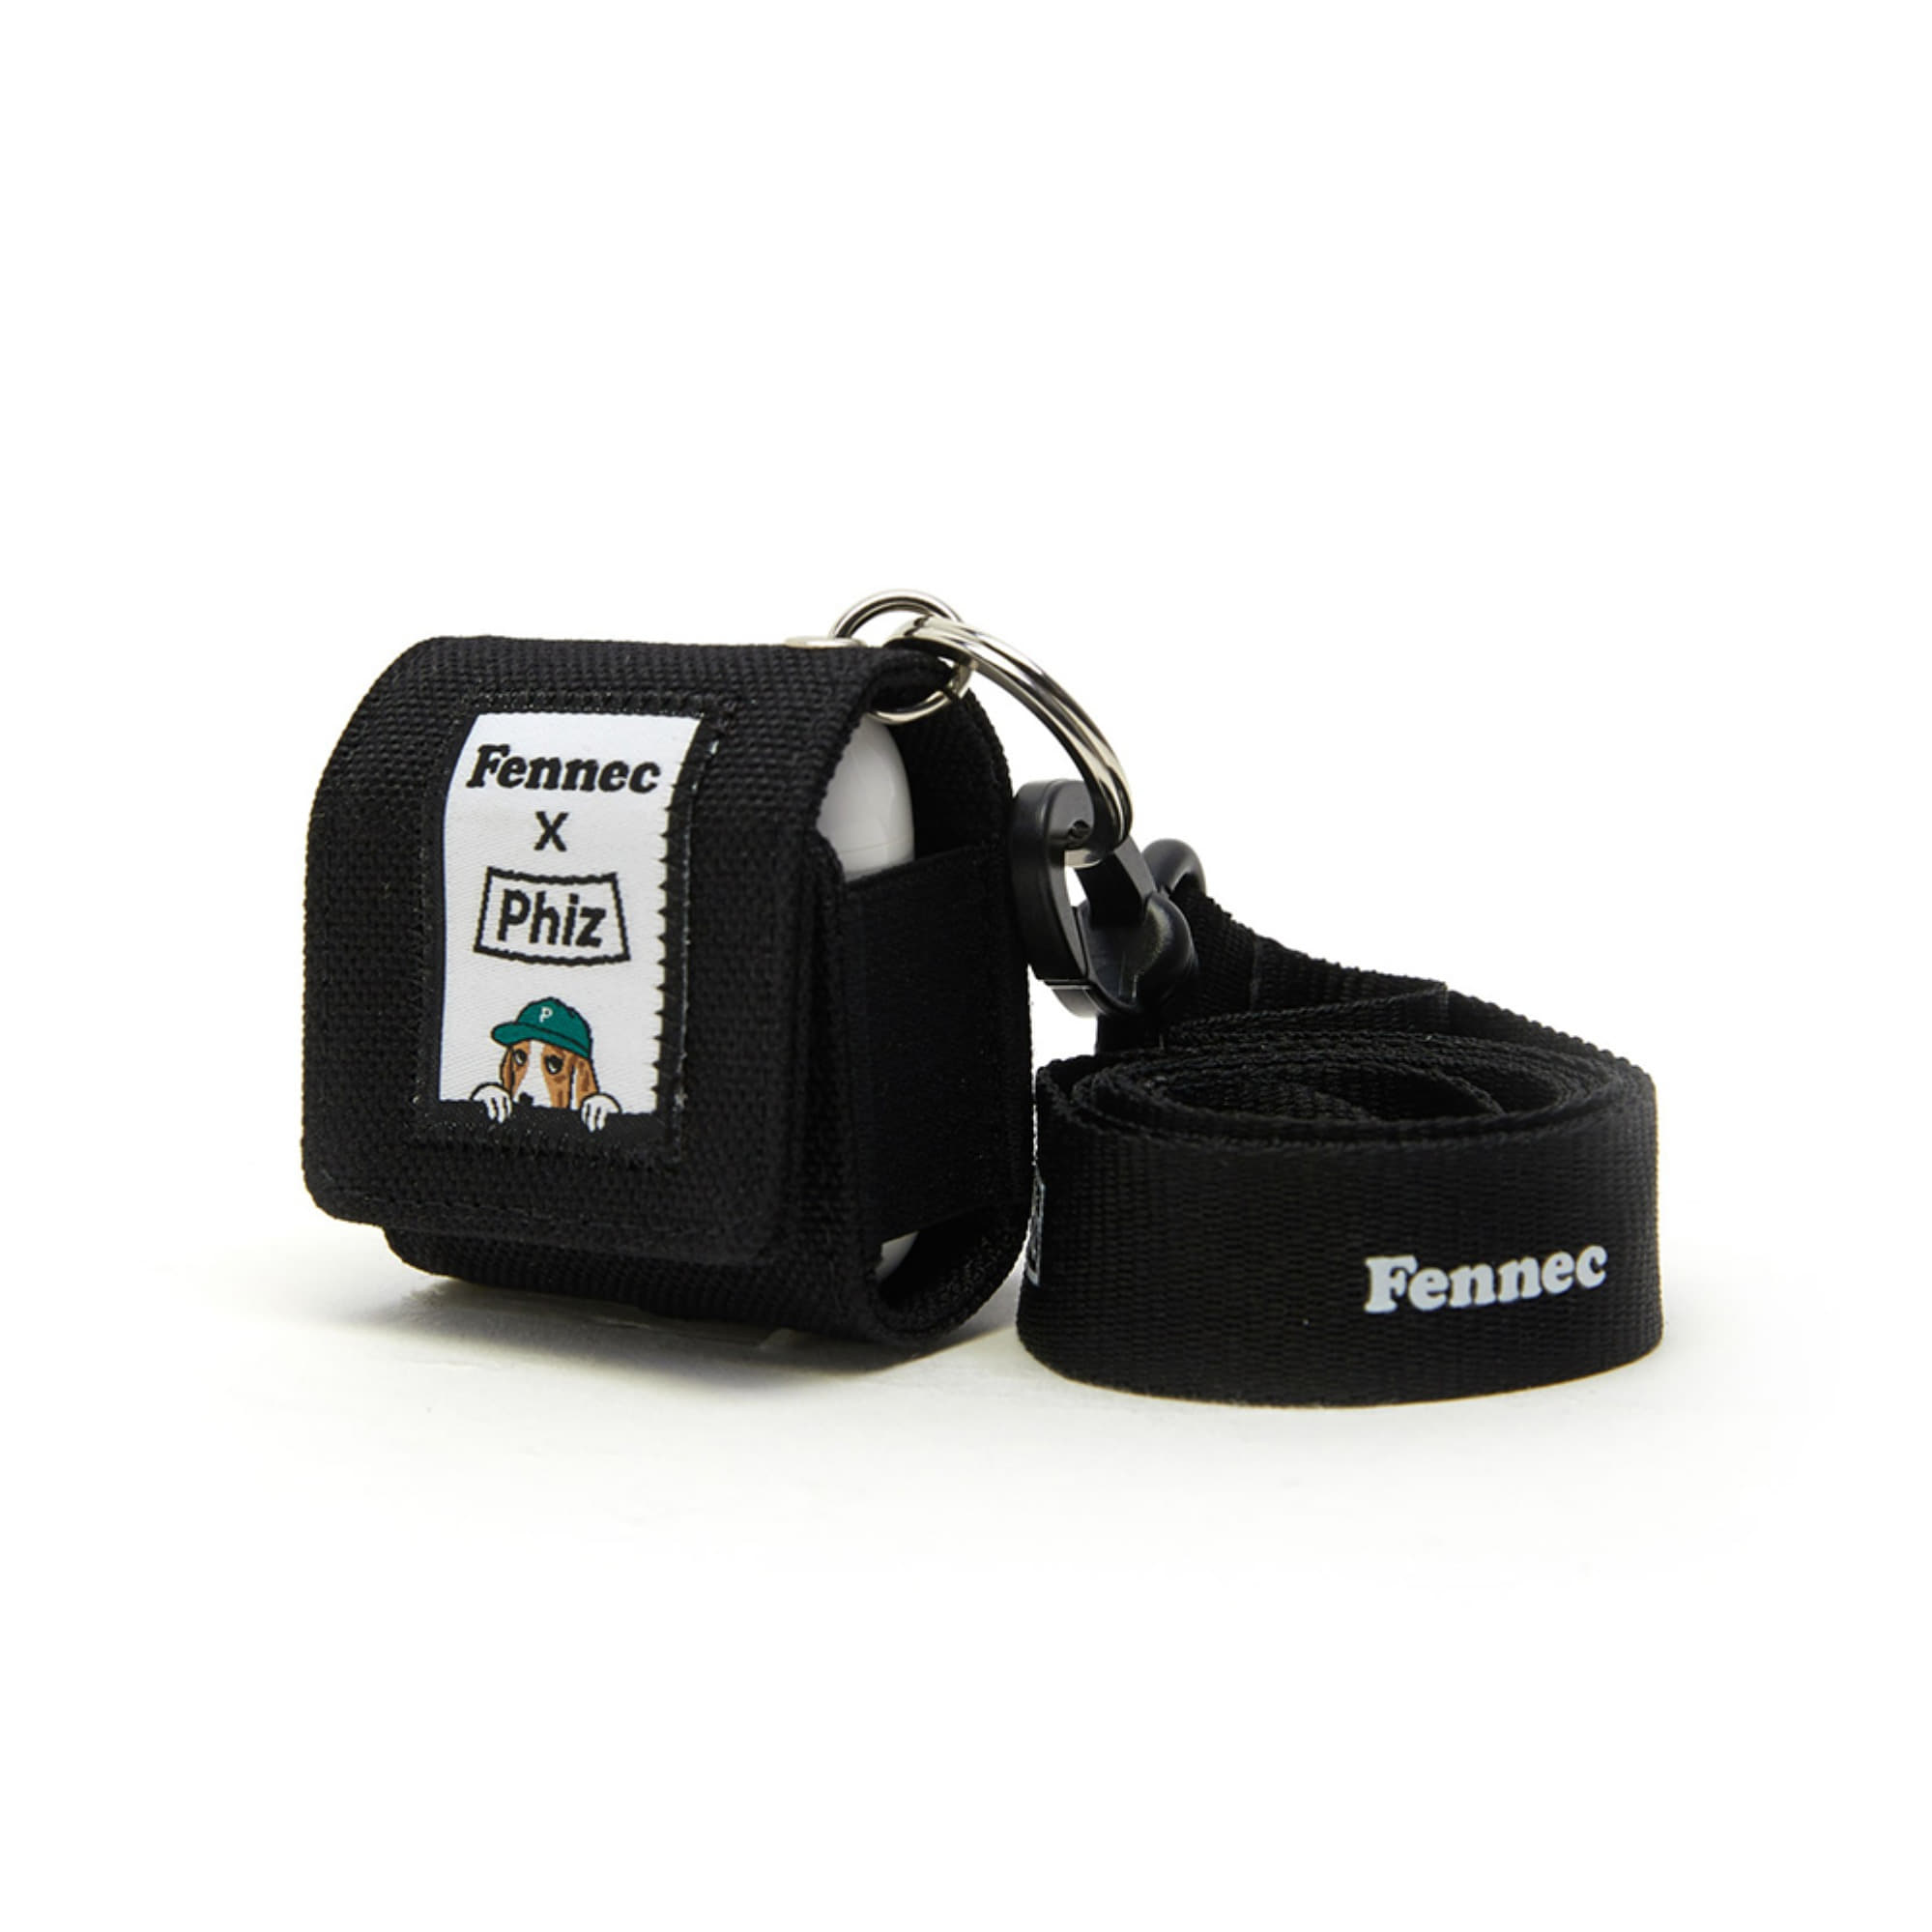 FENNEC X PHIZ C&S AIRPODS CASE - BLACK